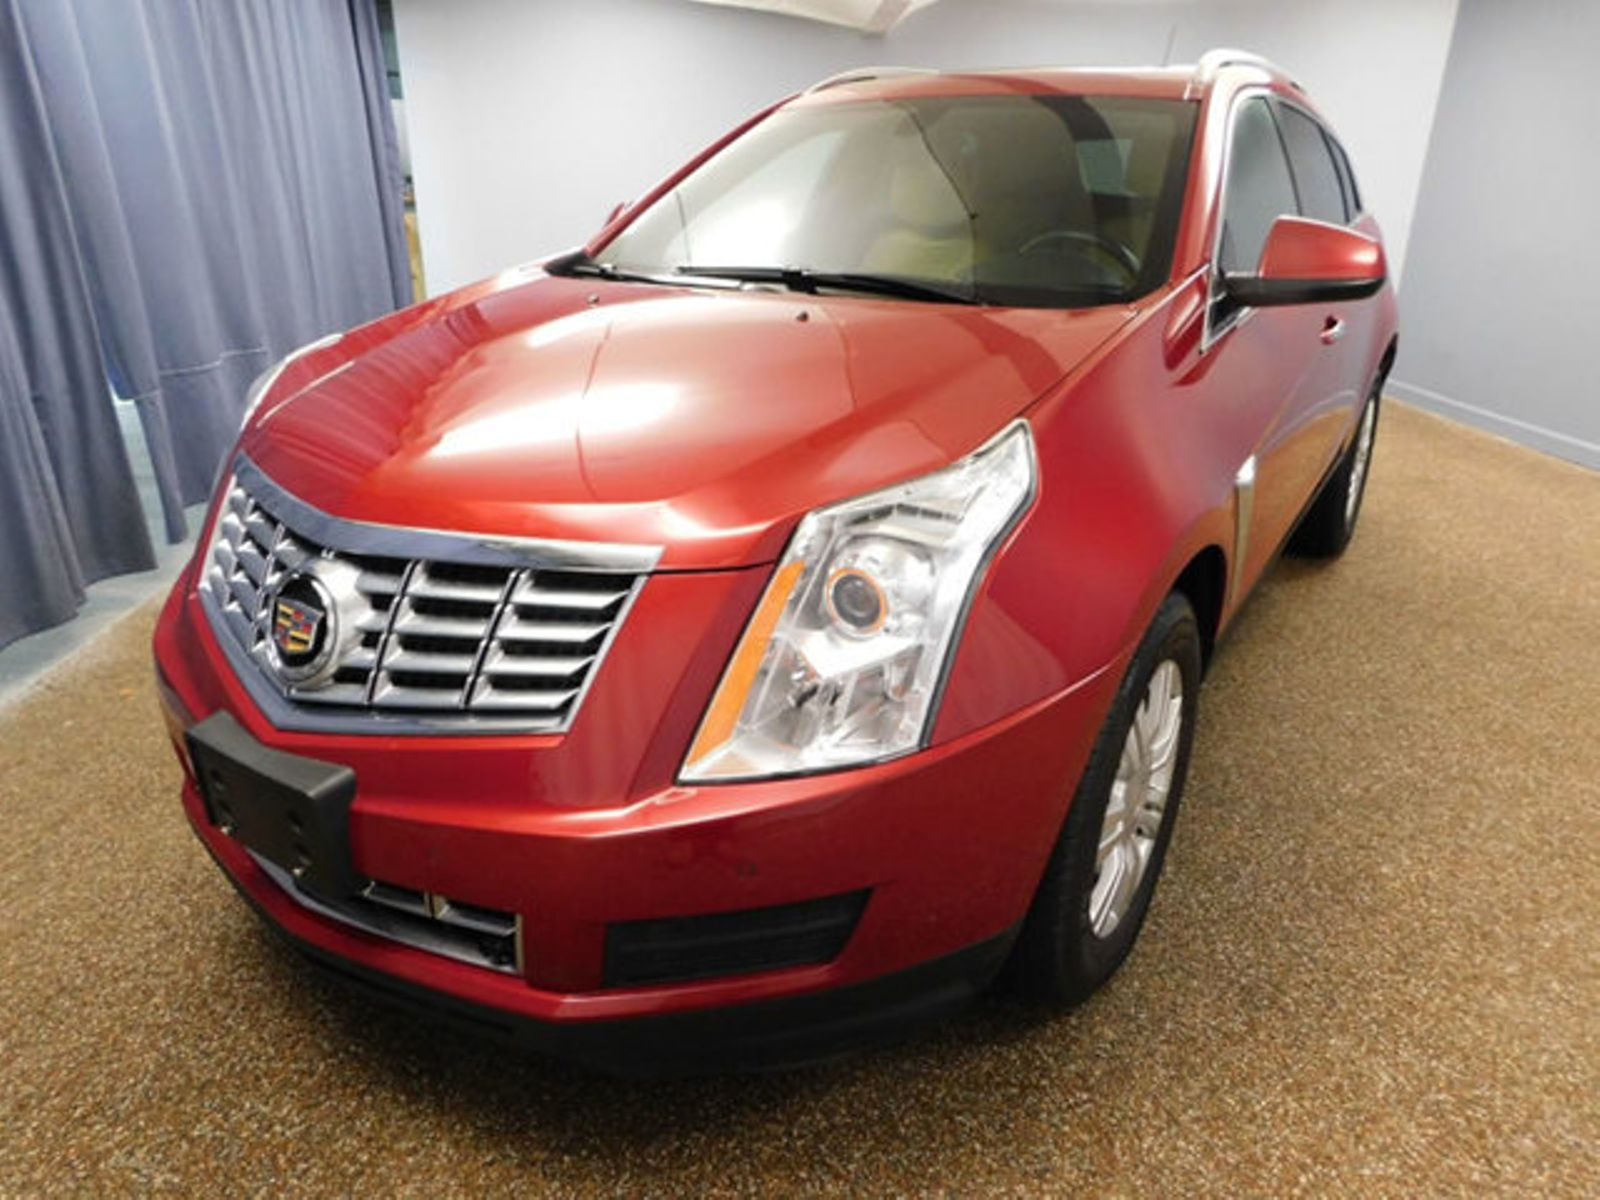 coast auto north city srx cadillac akron collection oh mall in revo luxury of